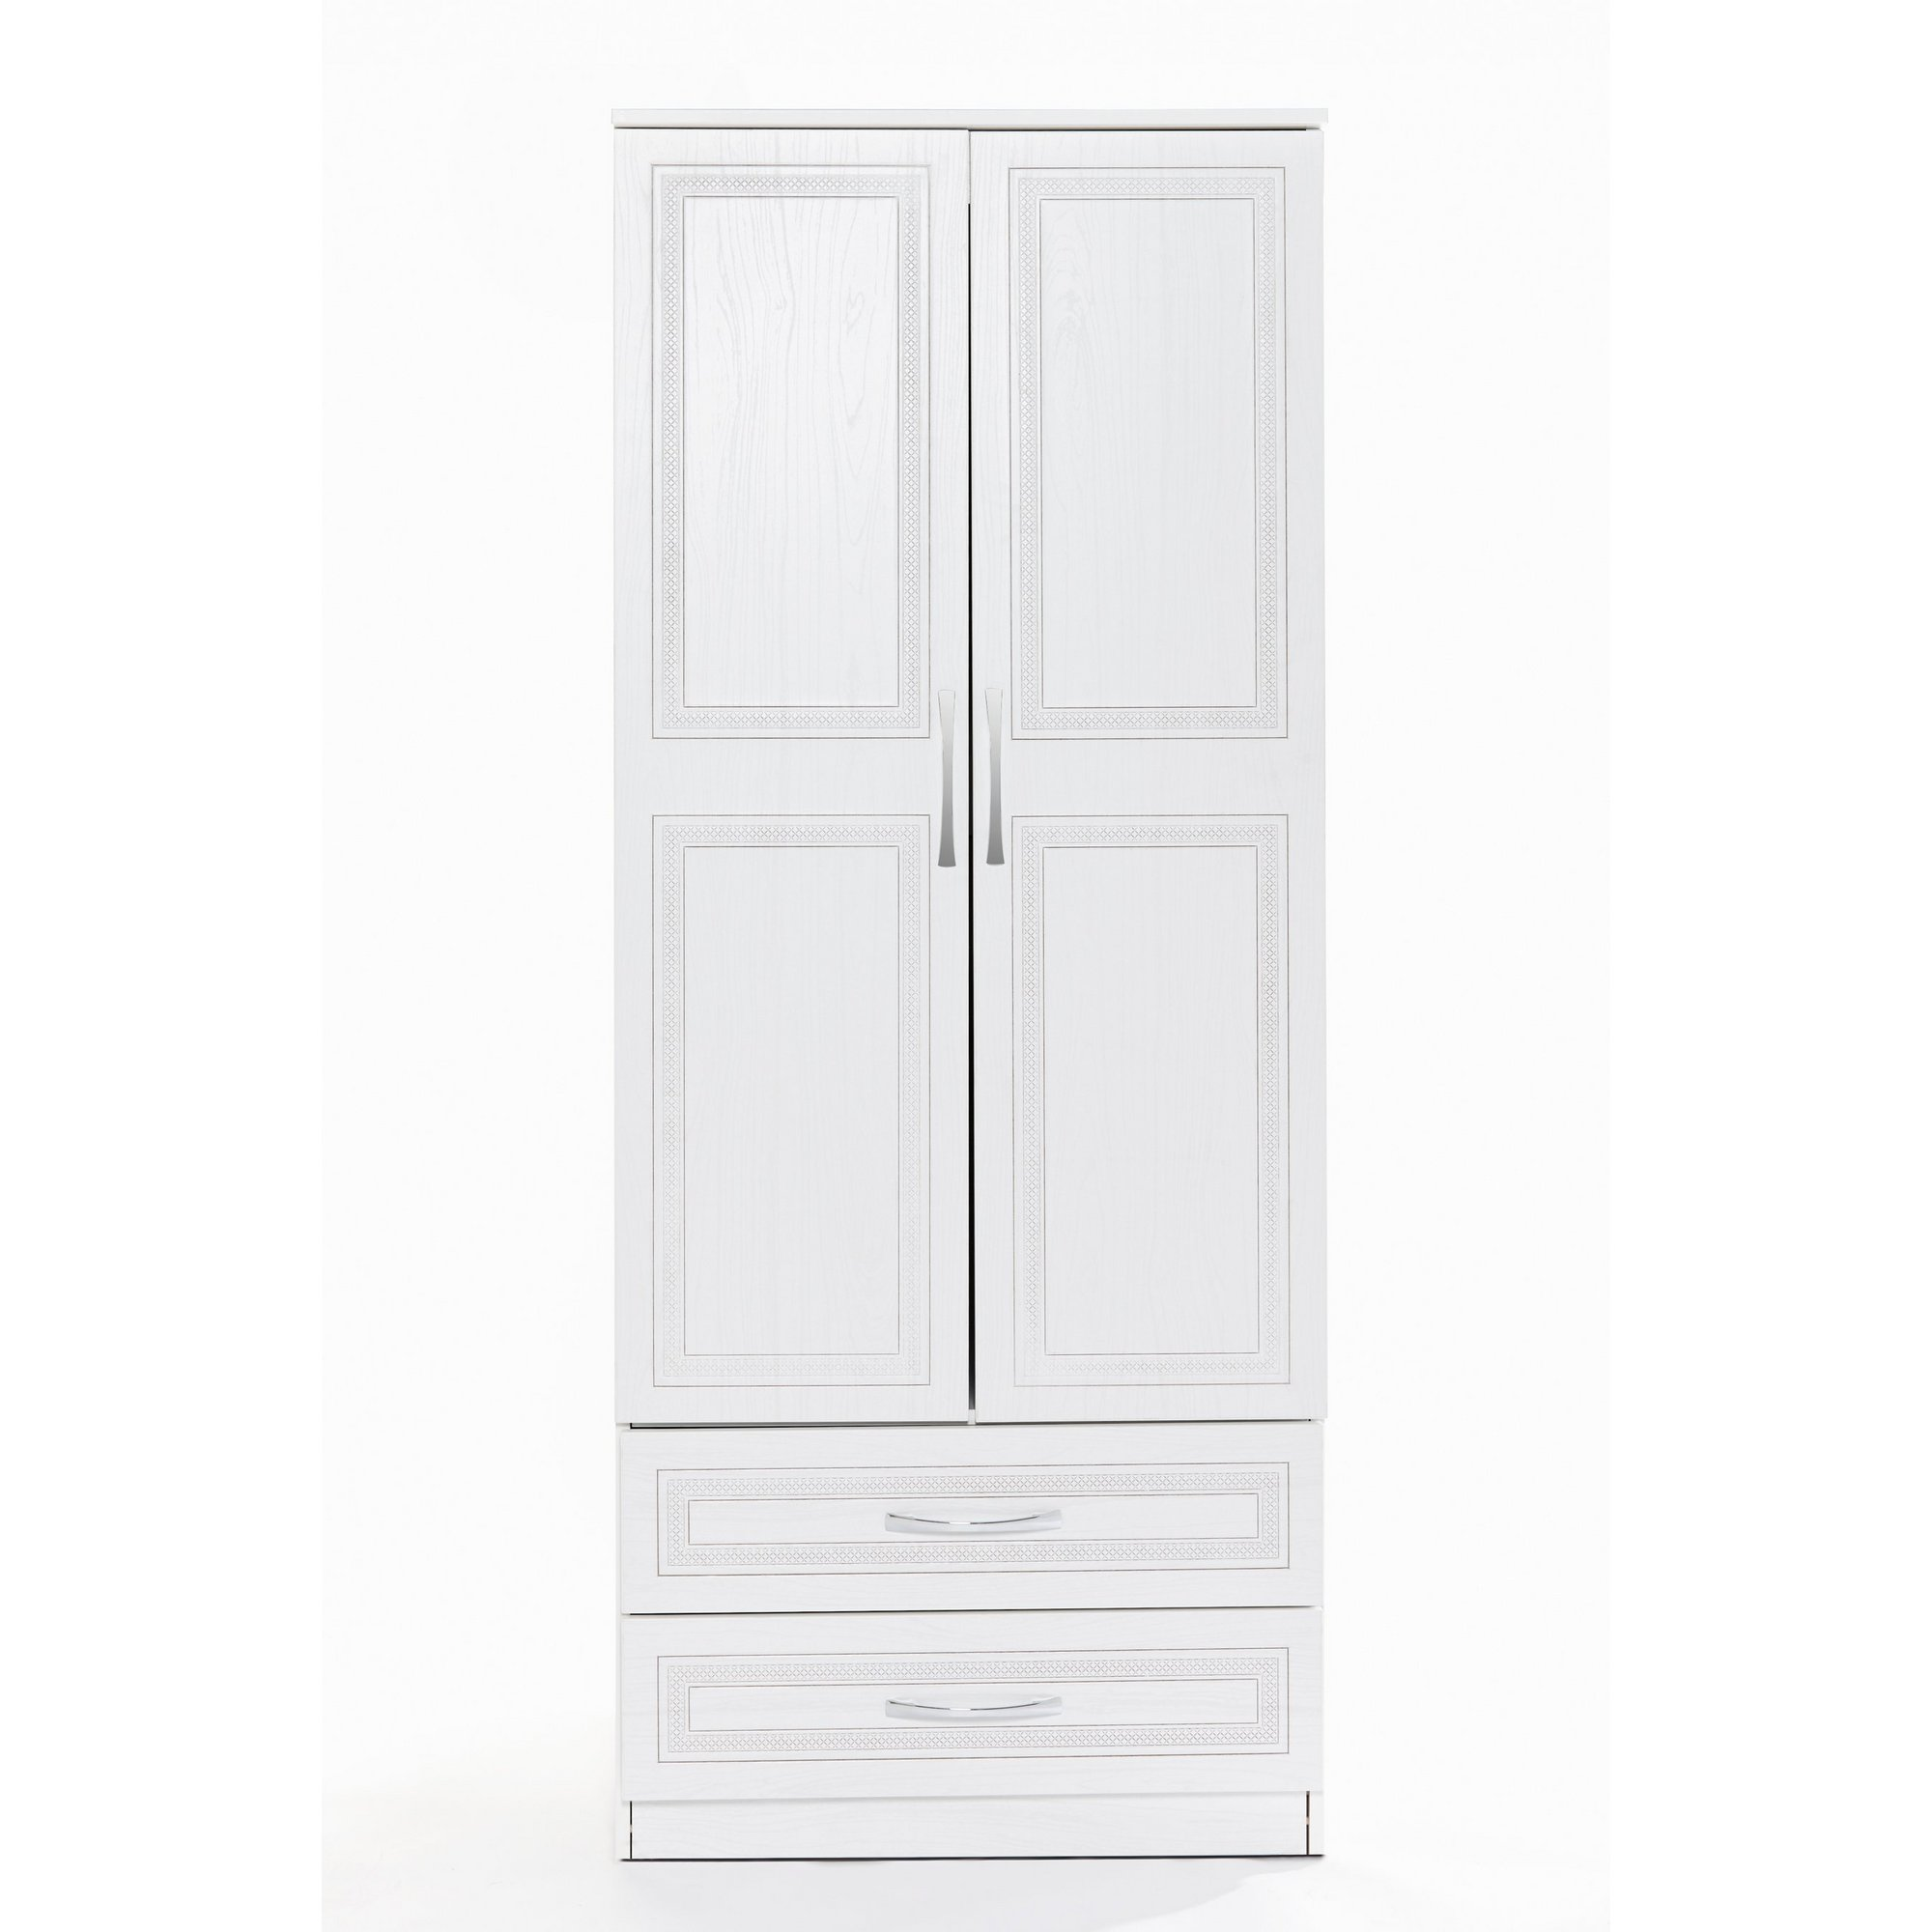 Image of Dorset 2 Drawer Wardrobe - Ready Assembled